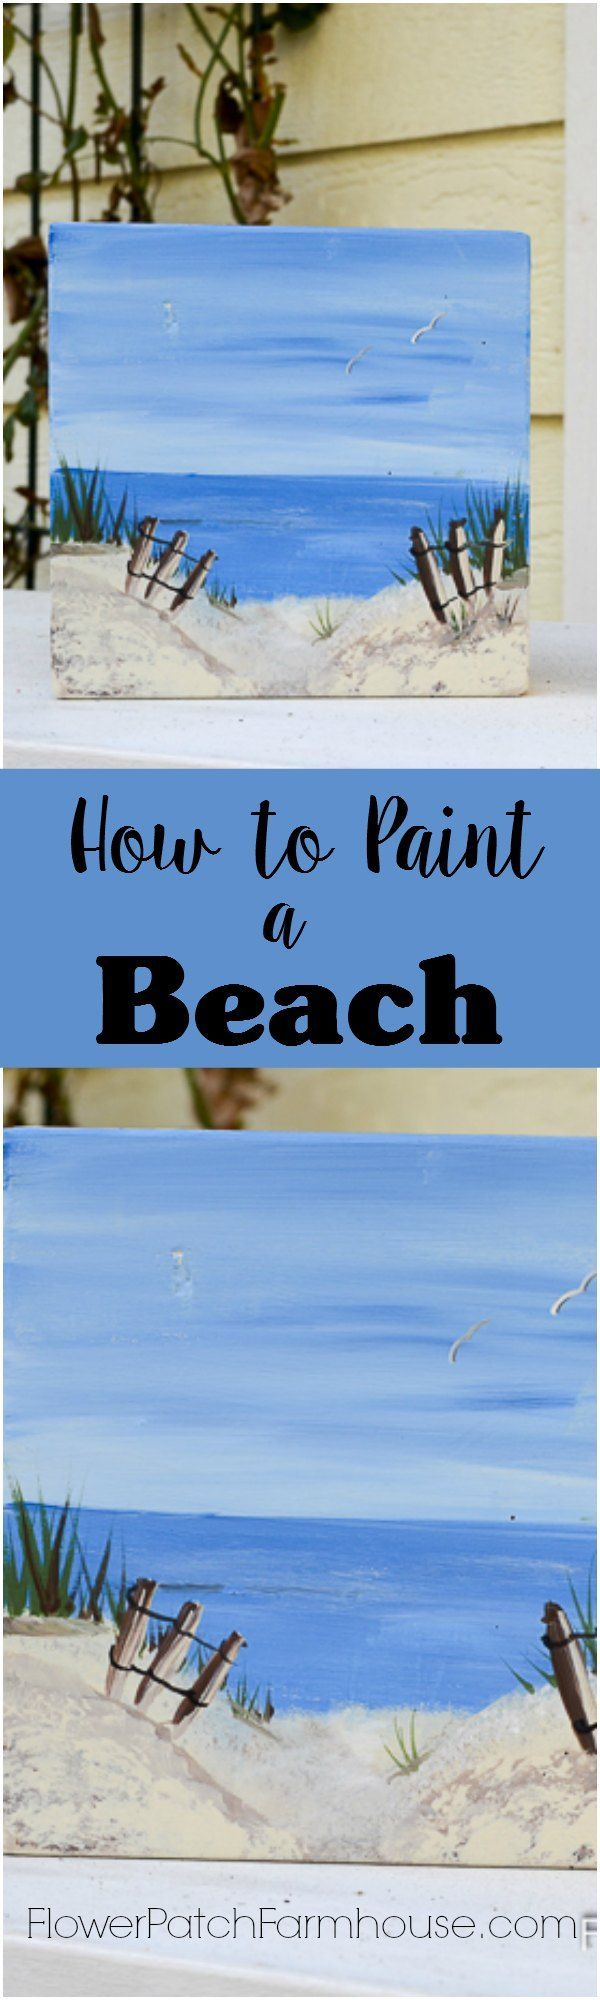 Learn How to Paint a Fun Beach Scene, easy painting tutorial for beginners. Great simple DIY decor, pallet project or just a fun craft.